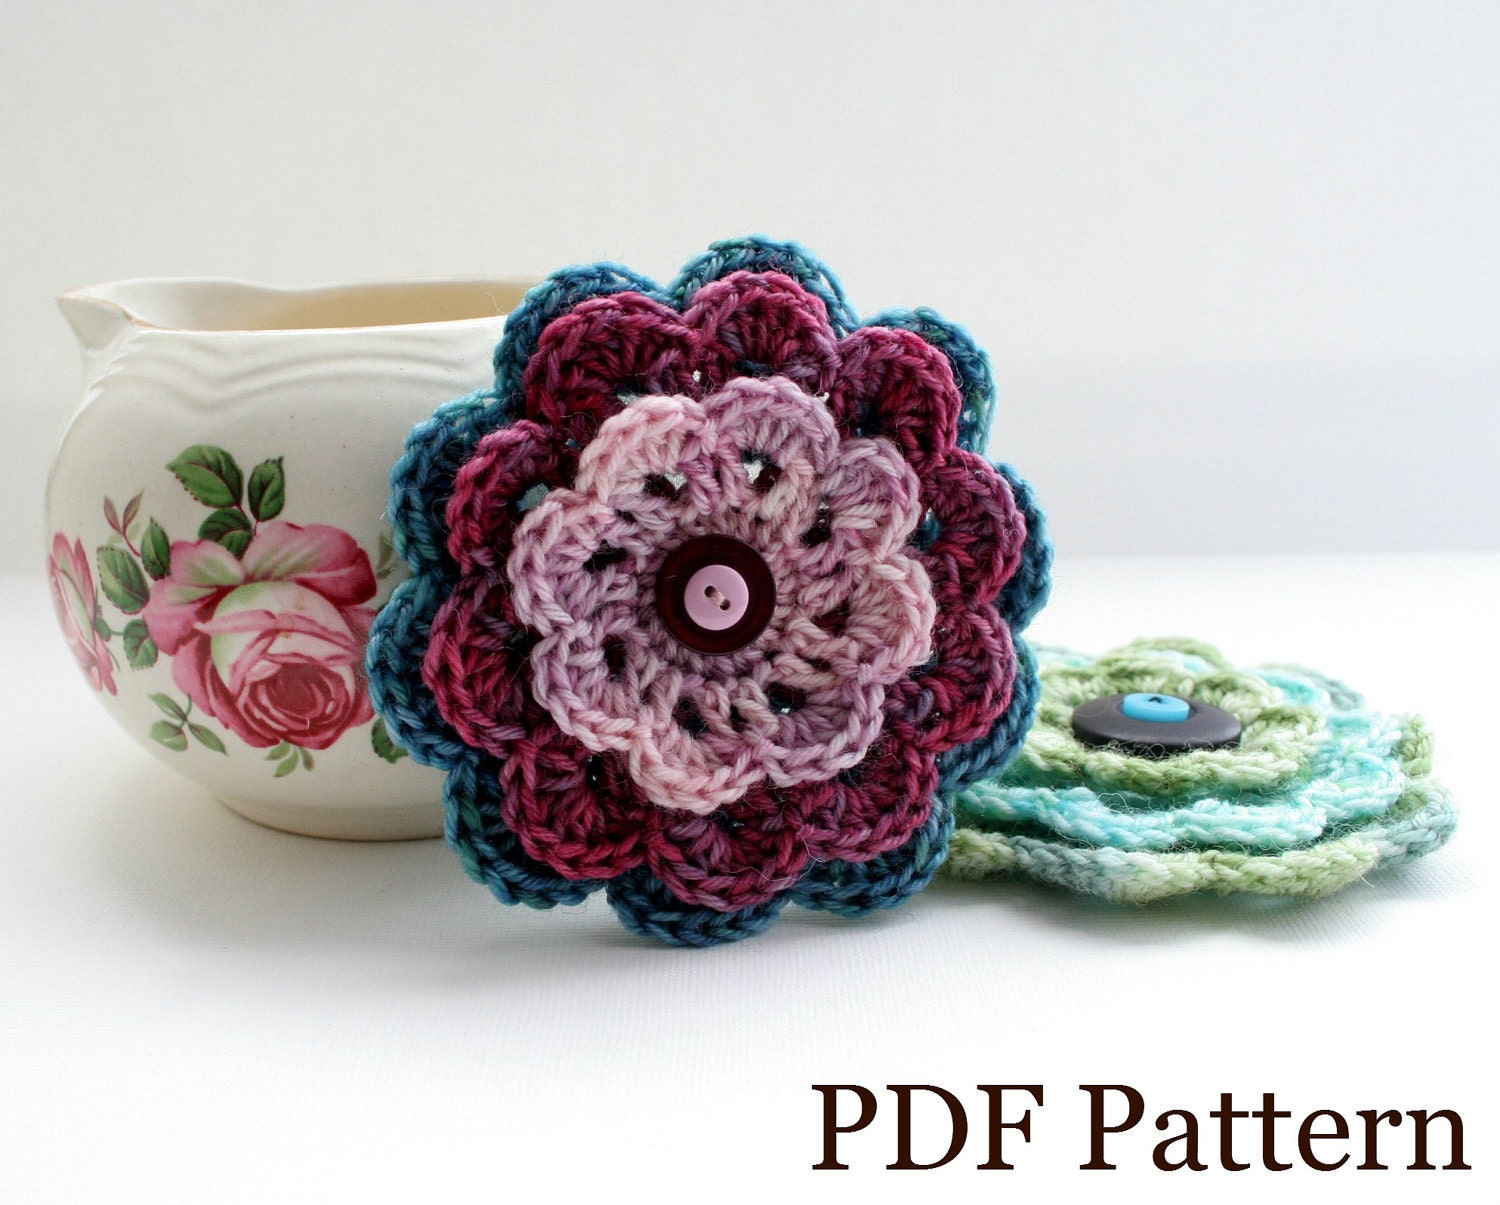 Crochet Stitches Uk Pdf : Crochet Flower Pattern PDF download DIY tutorial by EadenYarns